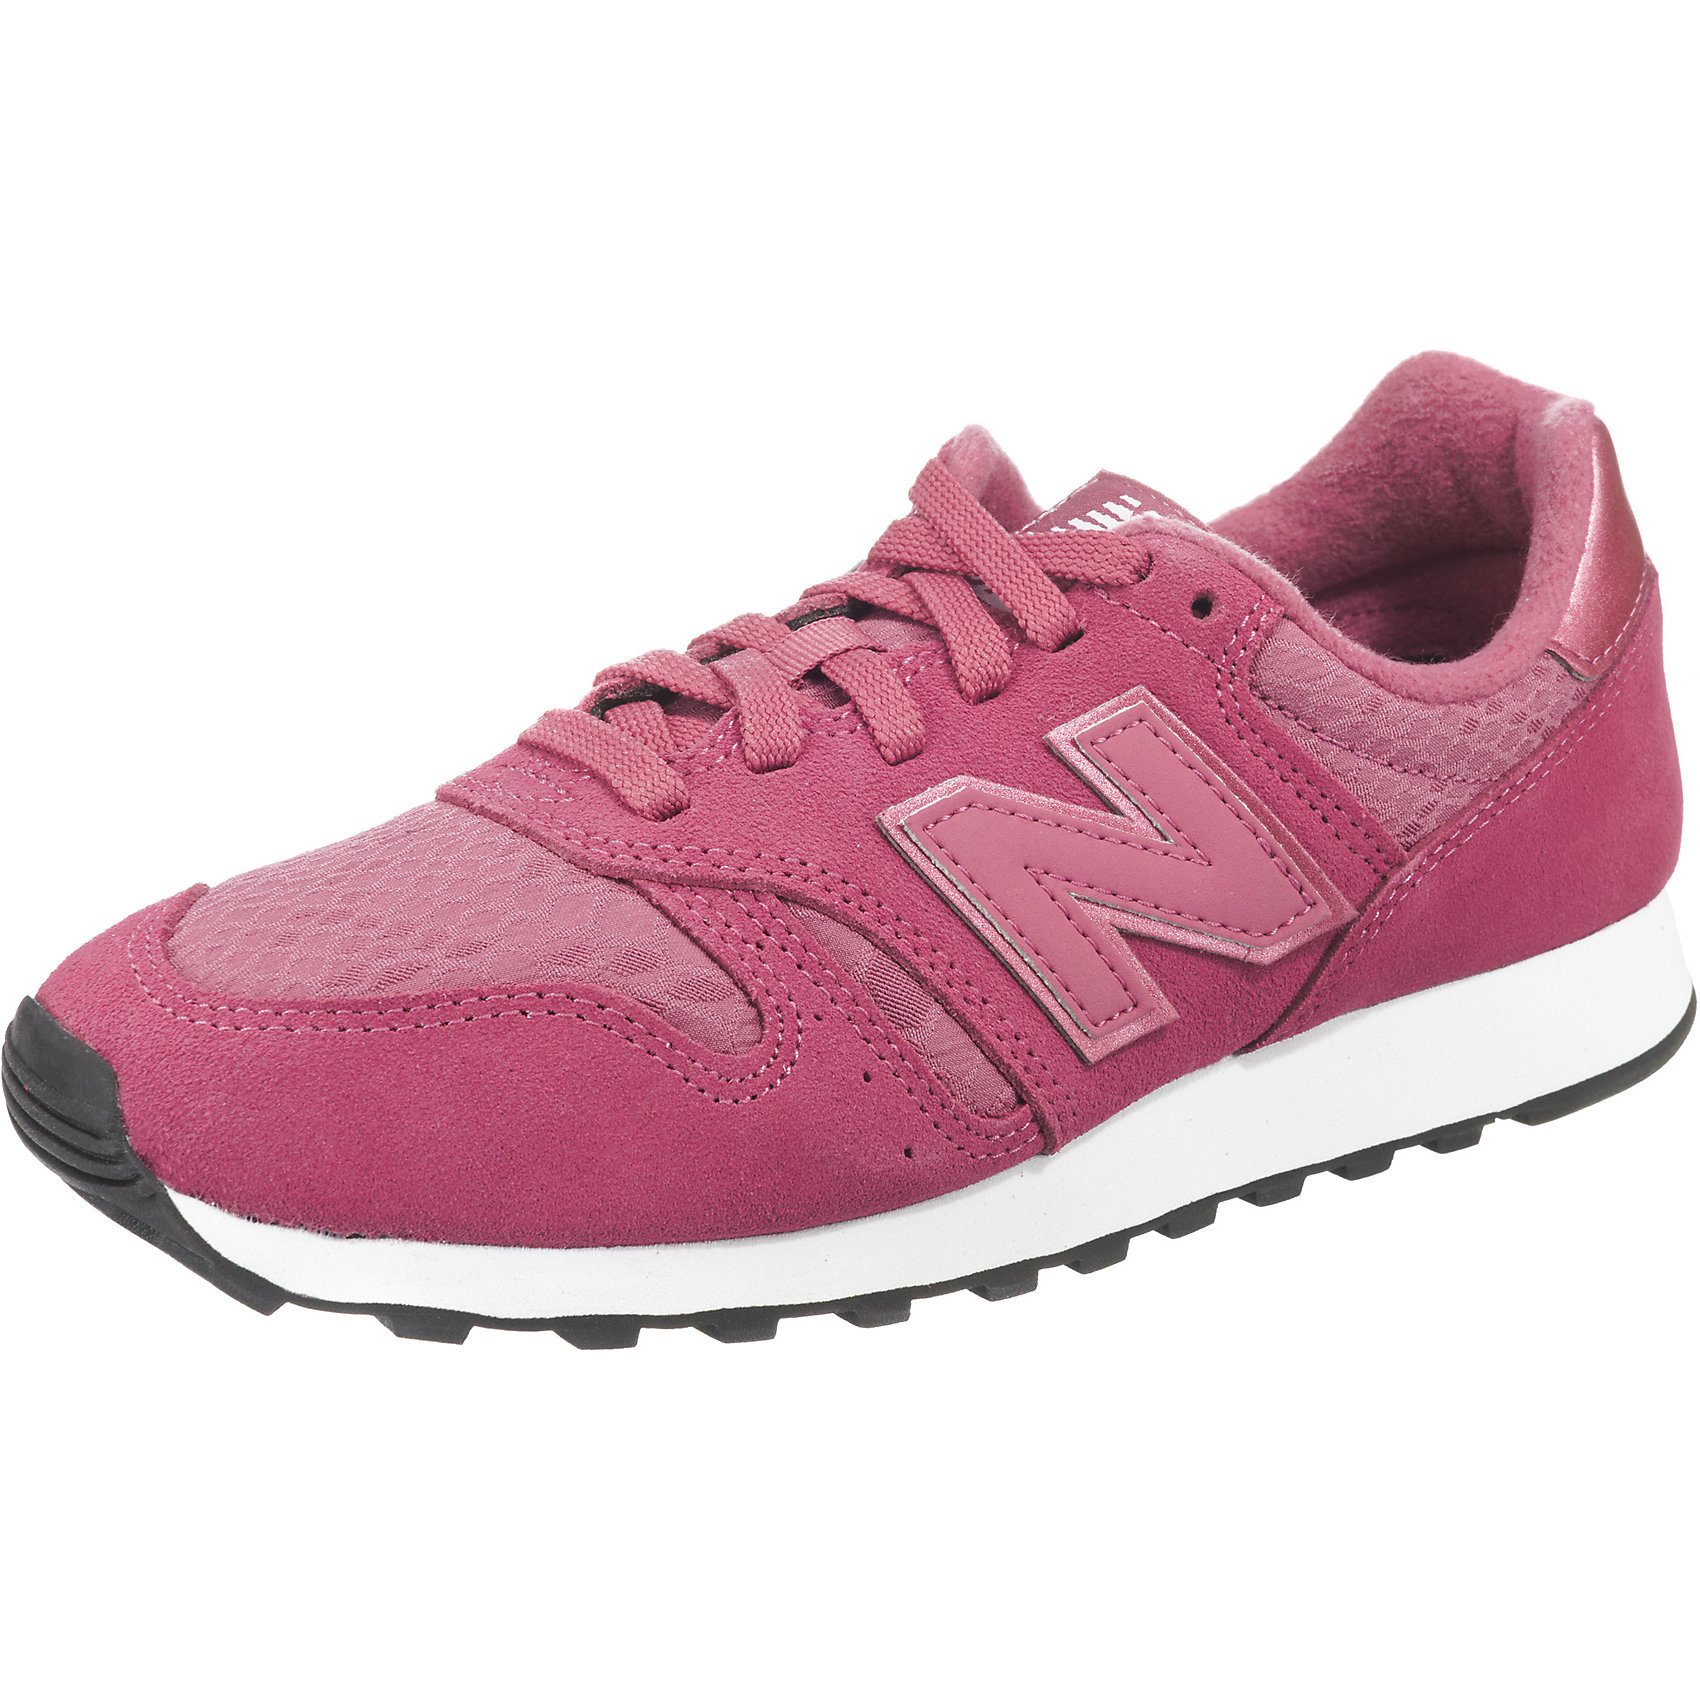 456df32832 Neu new balance WL373 B Sneakers Low 7397813 für Damen rosa | eBay